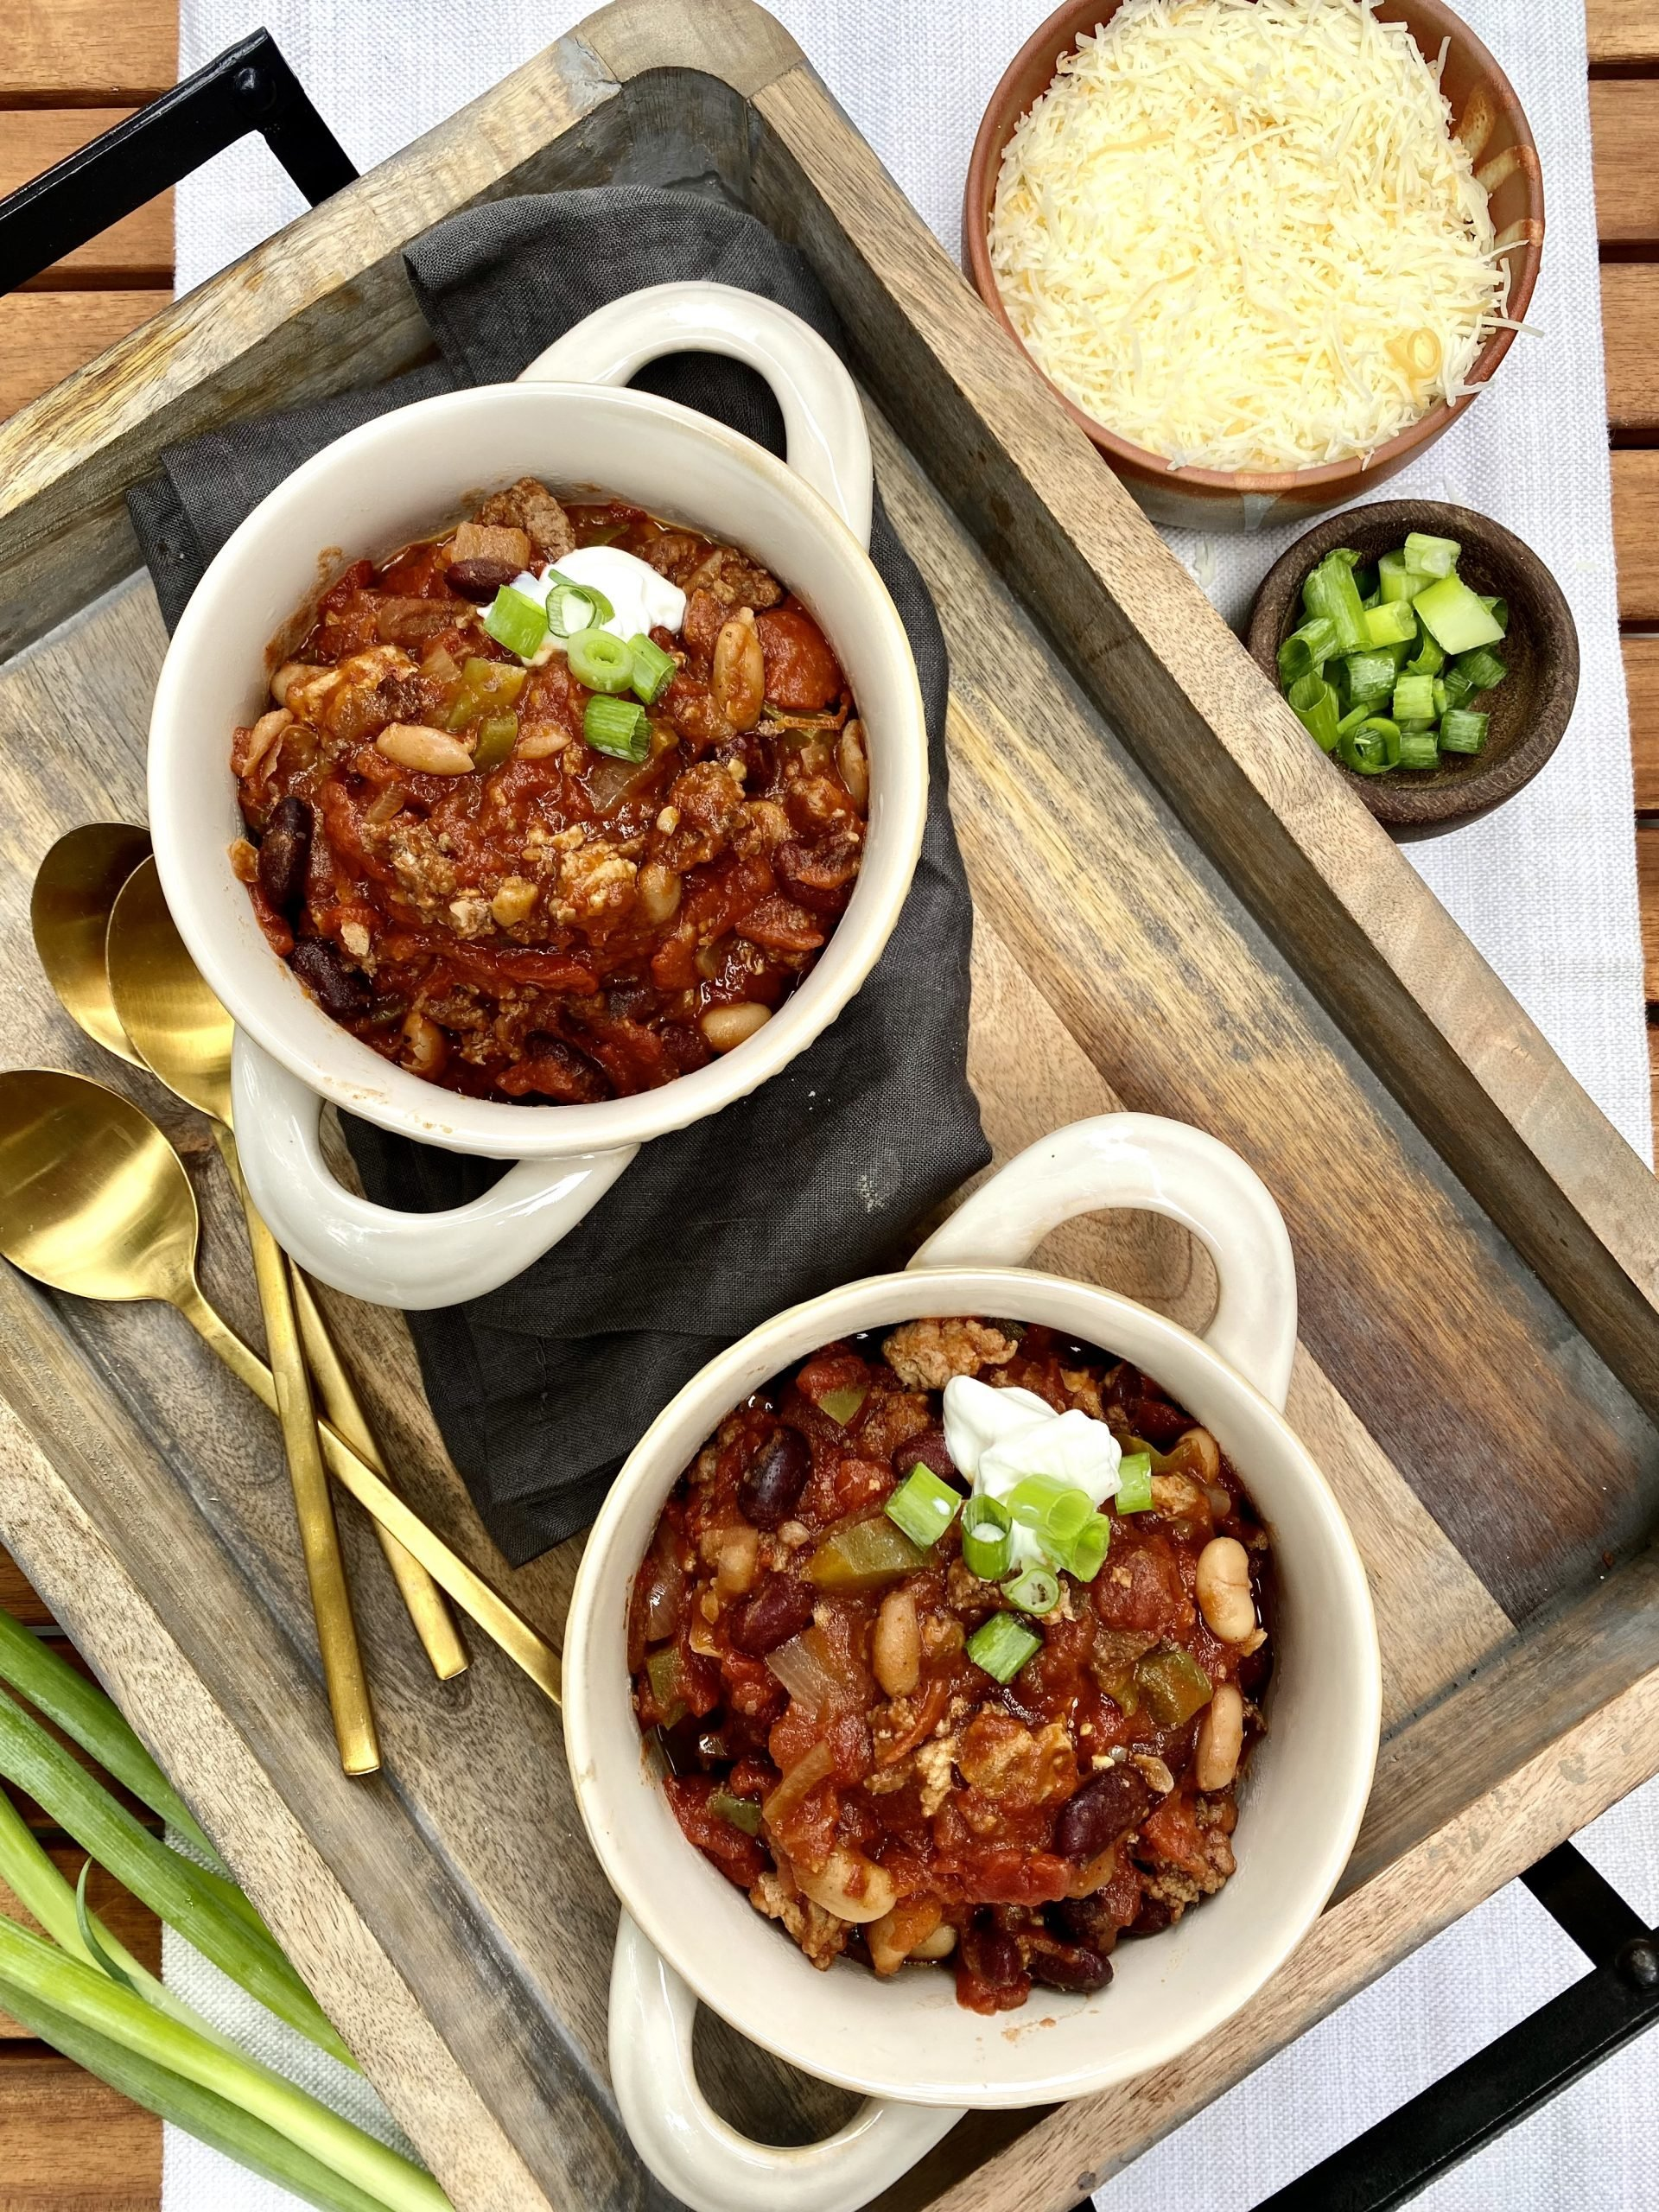 The Easiest Slowcooker Chili Recipe You'll Ever Make